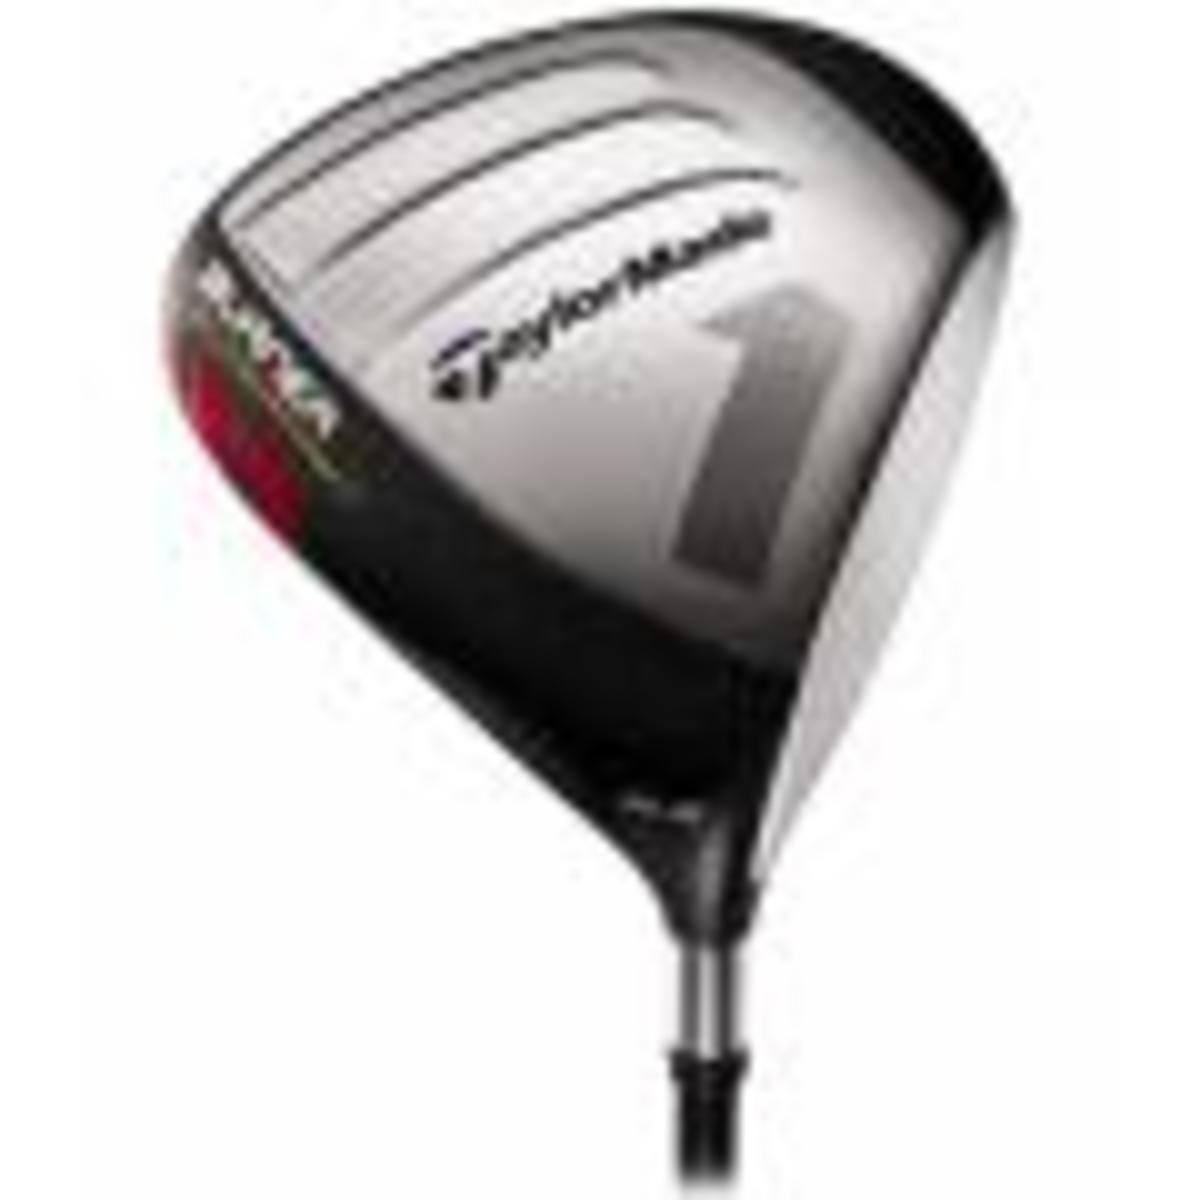 Go to Golfsmith and try it out in the pro pit